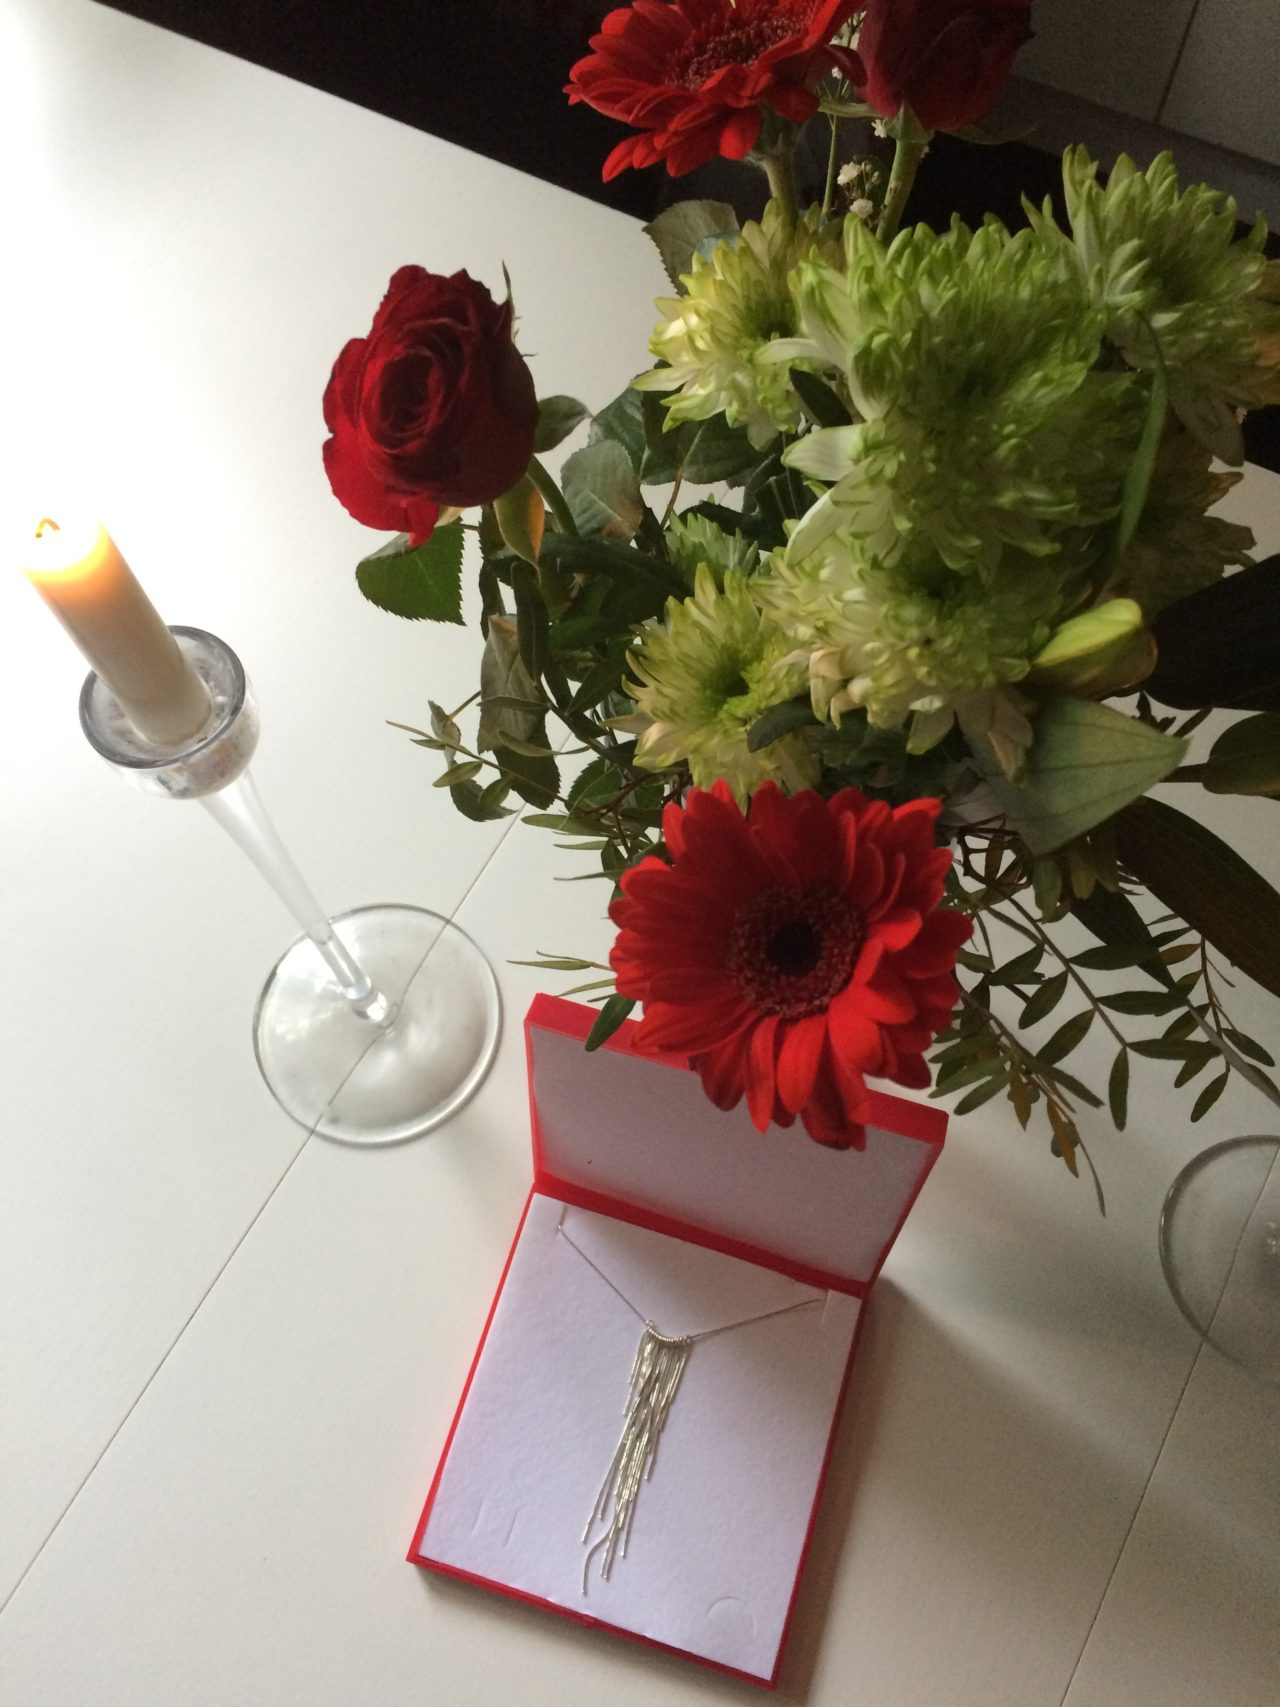 Jewelry Gift With Flowers And A Lit Candle